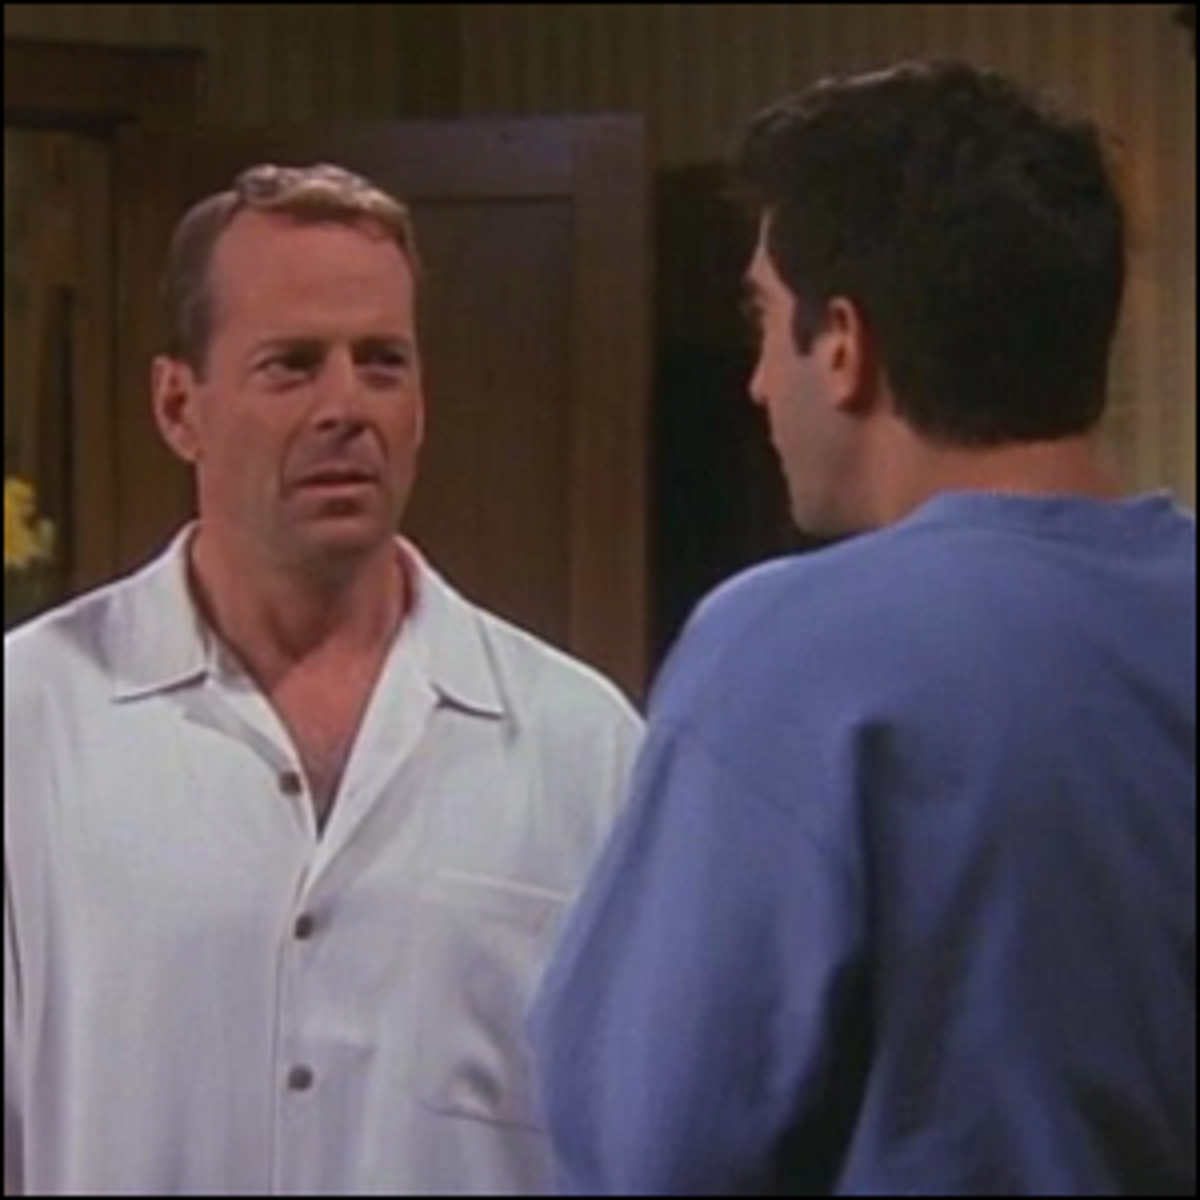 Bruce Willis' guest star appearance on the television show Friends.